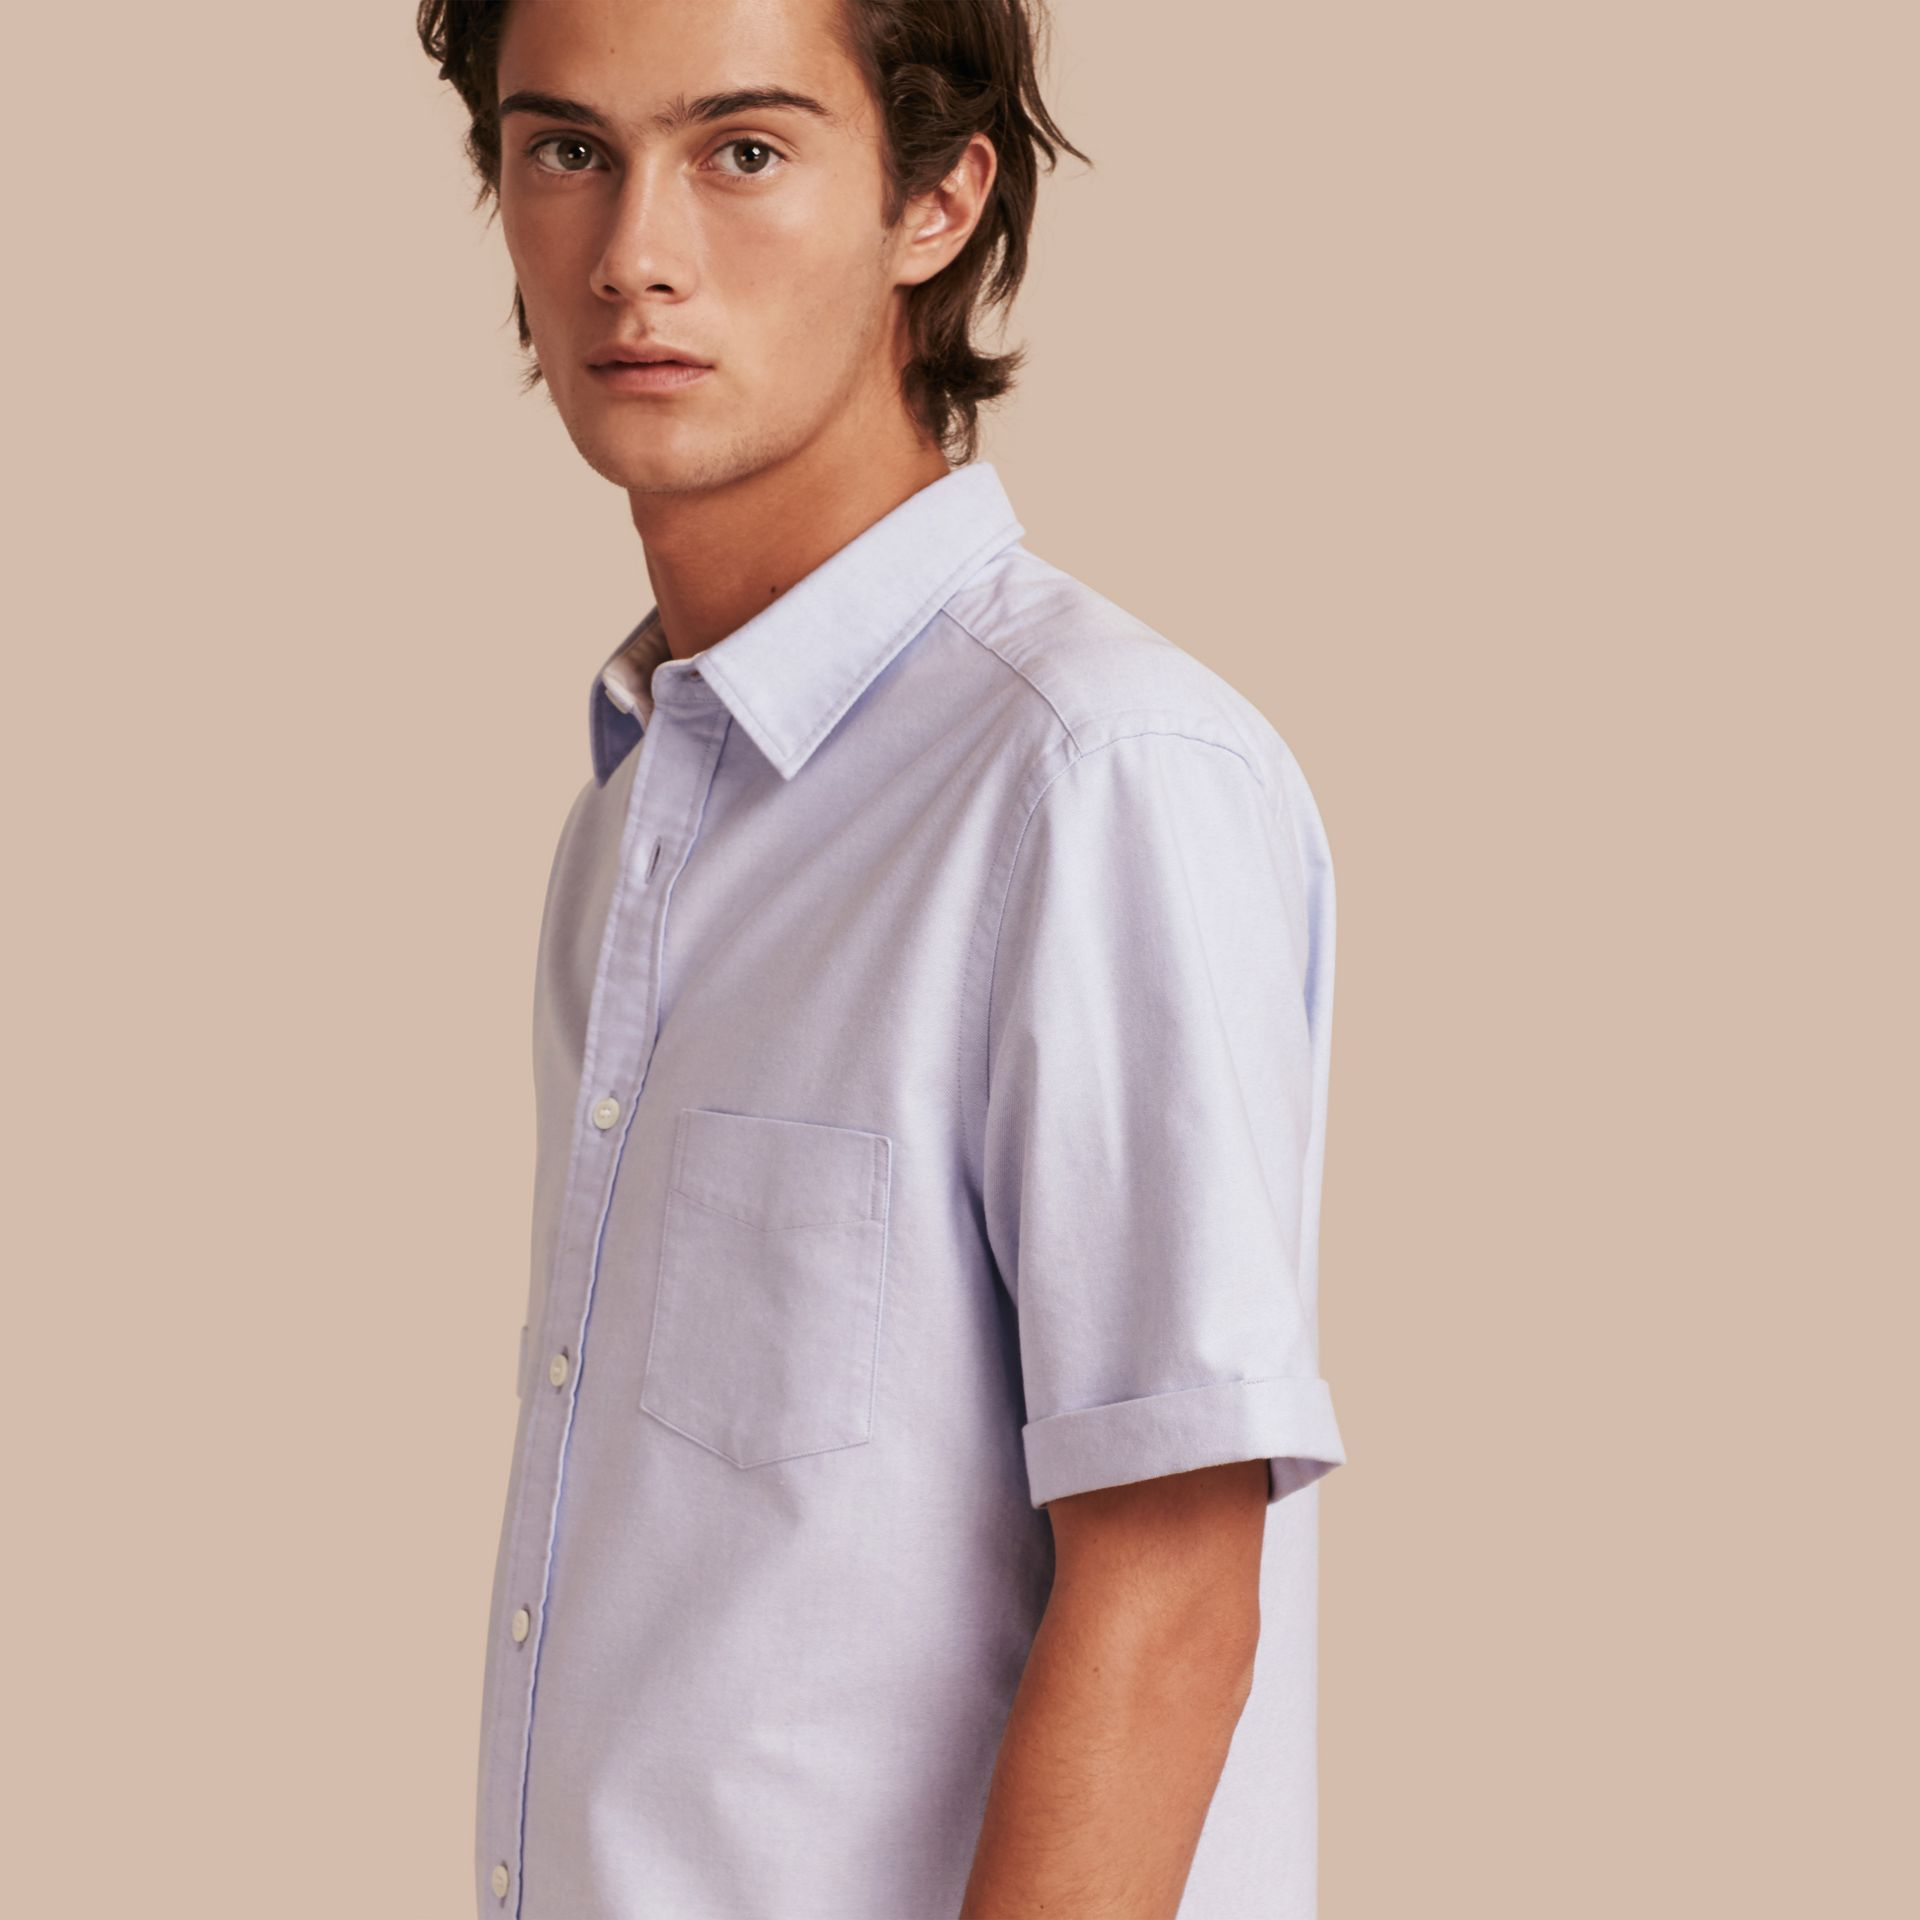 Cornflower blue Check Detail Short-Sleeved Cotton Oxford Shirt Cornflower Blue - gallery image 7